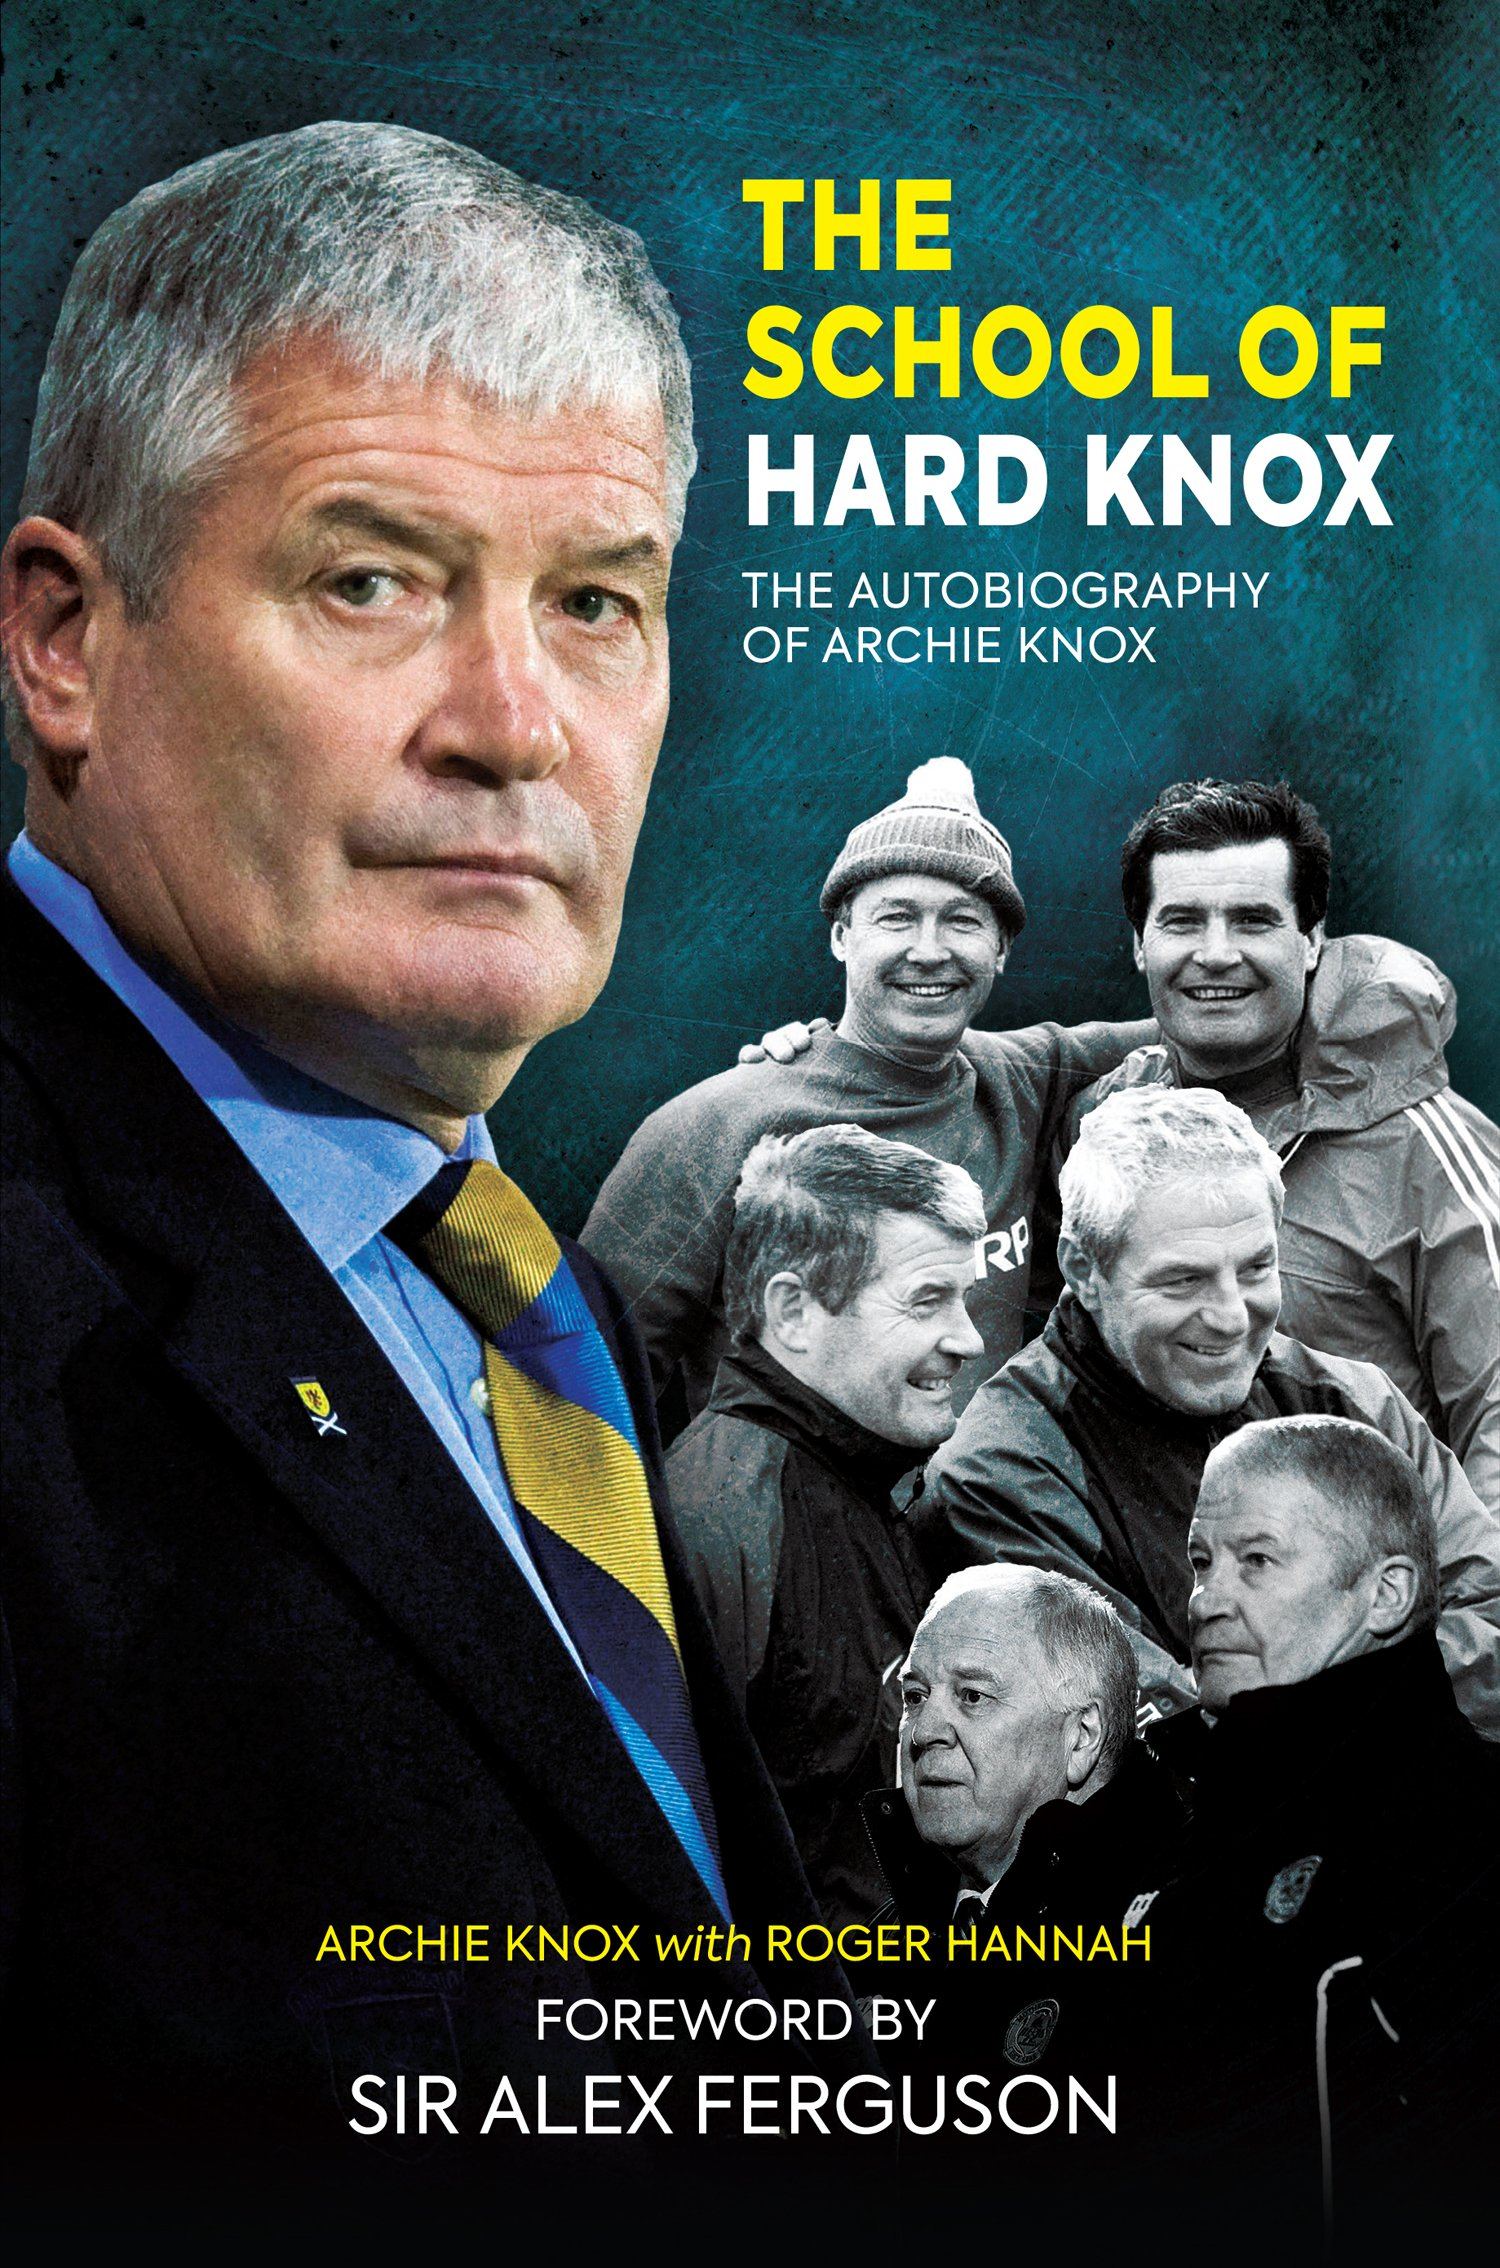 Download The School of Hard Knox: The Autobiography of Archie Knox (English Edition)